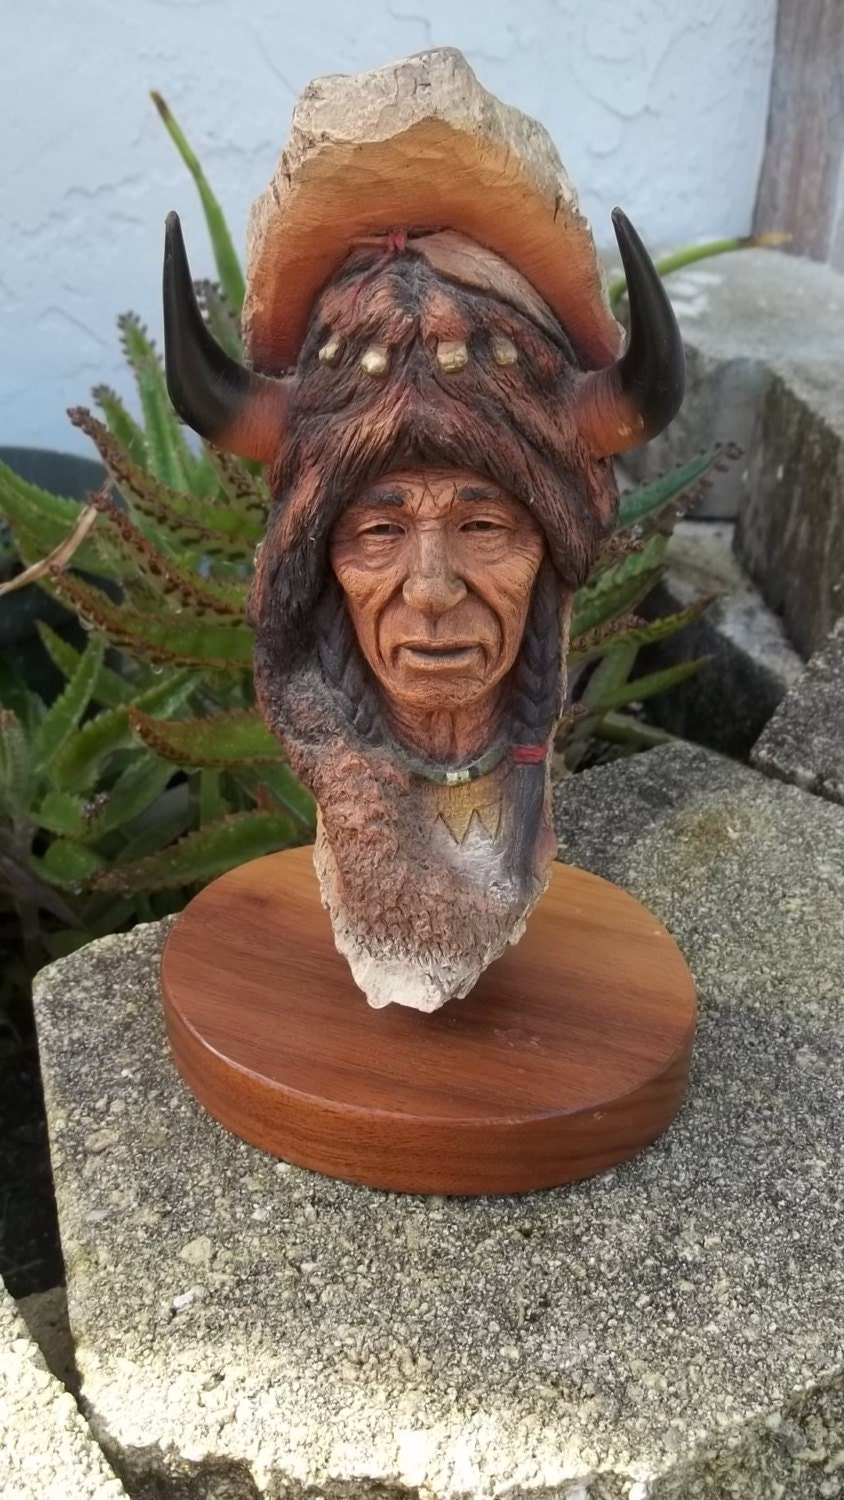 Vintage Neil J Rose Native American Indian Sculpture Bust